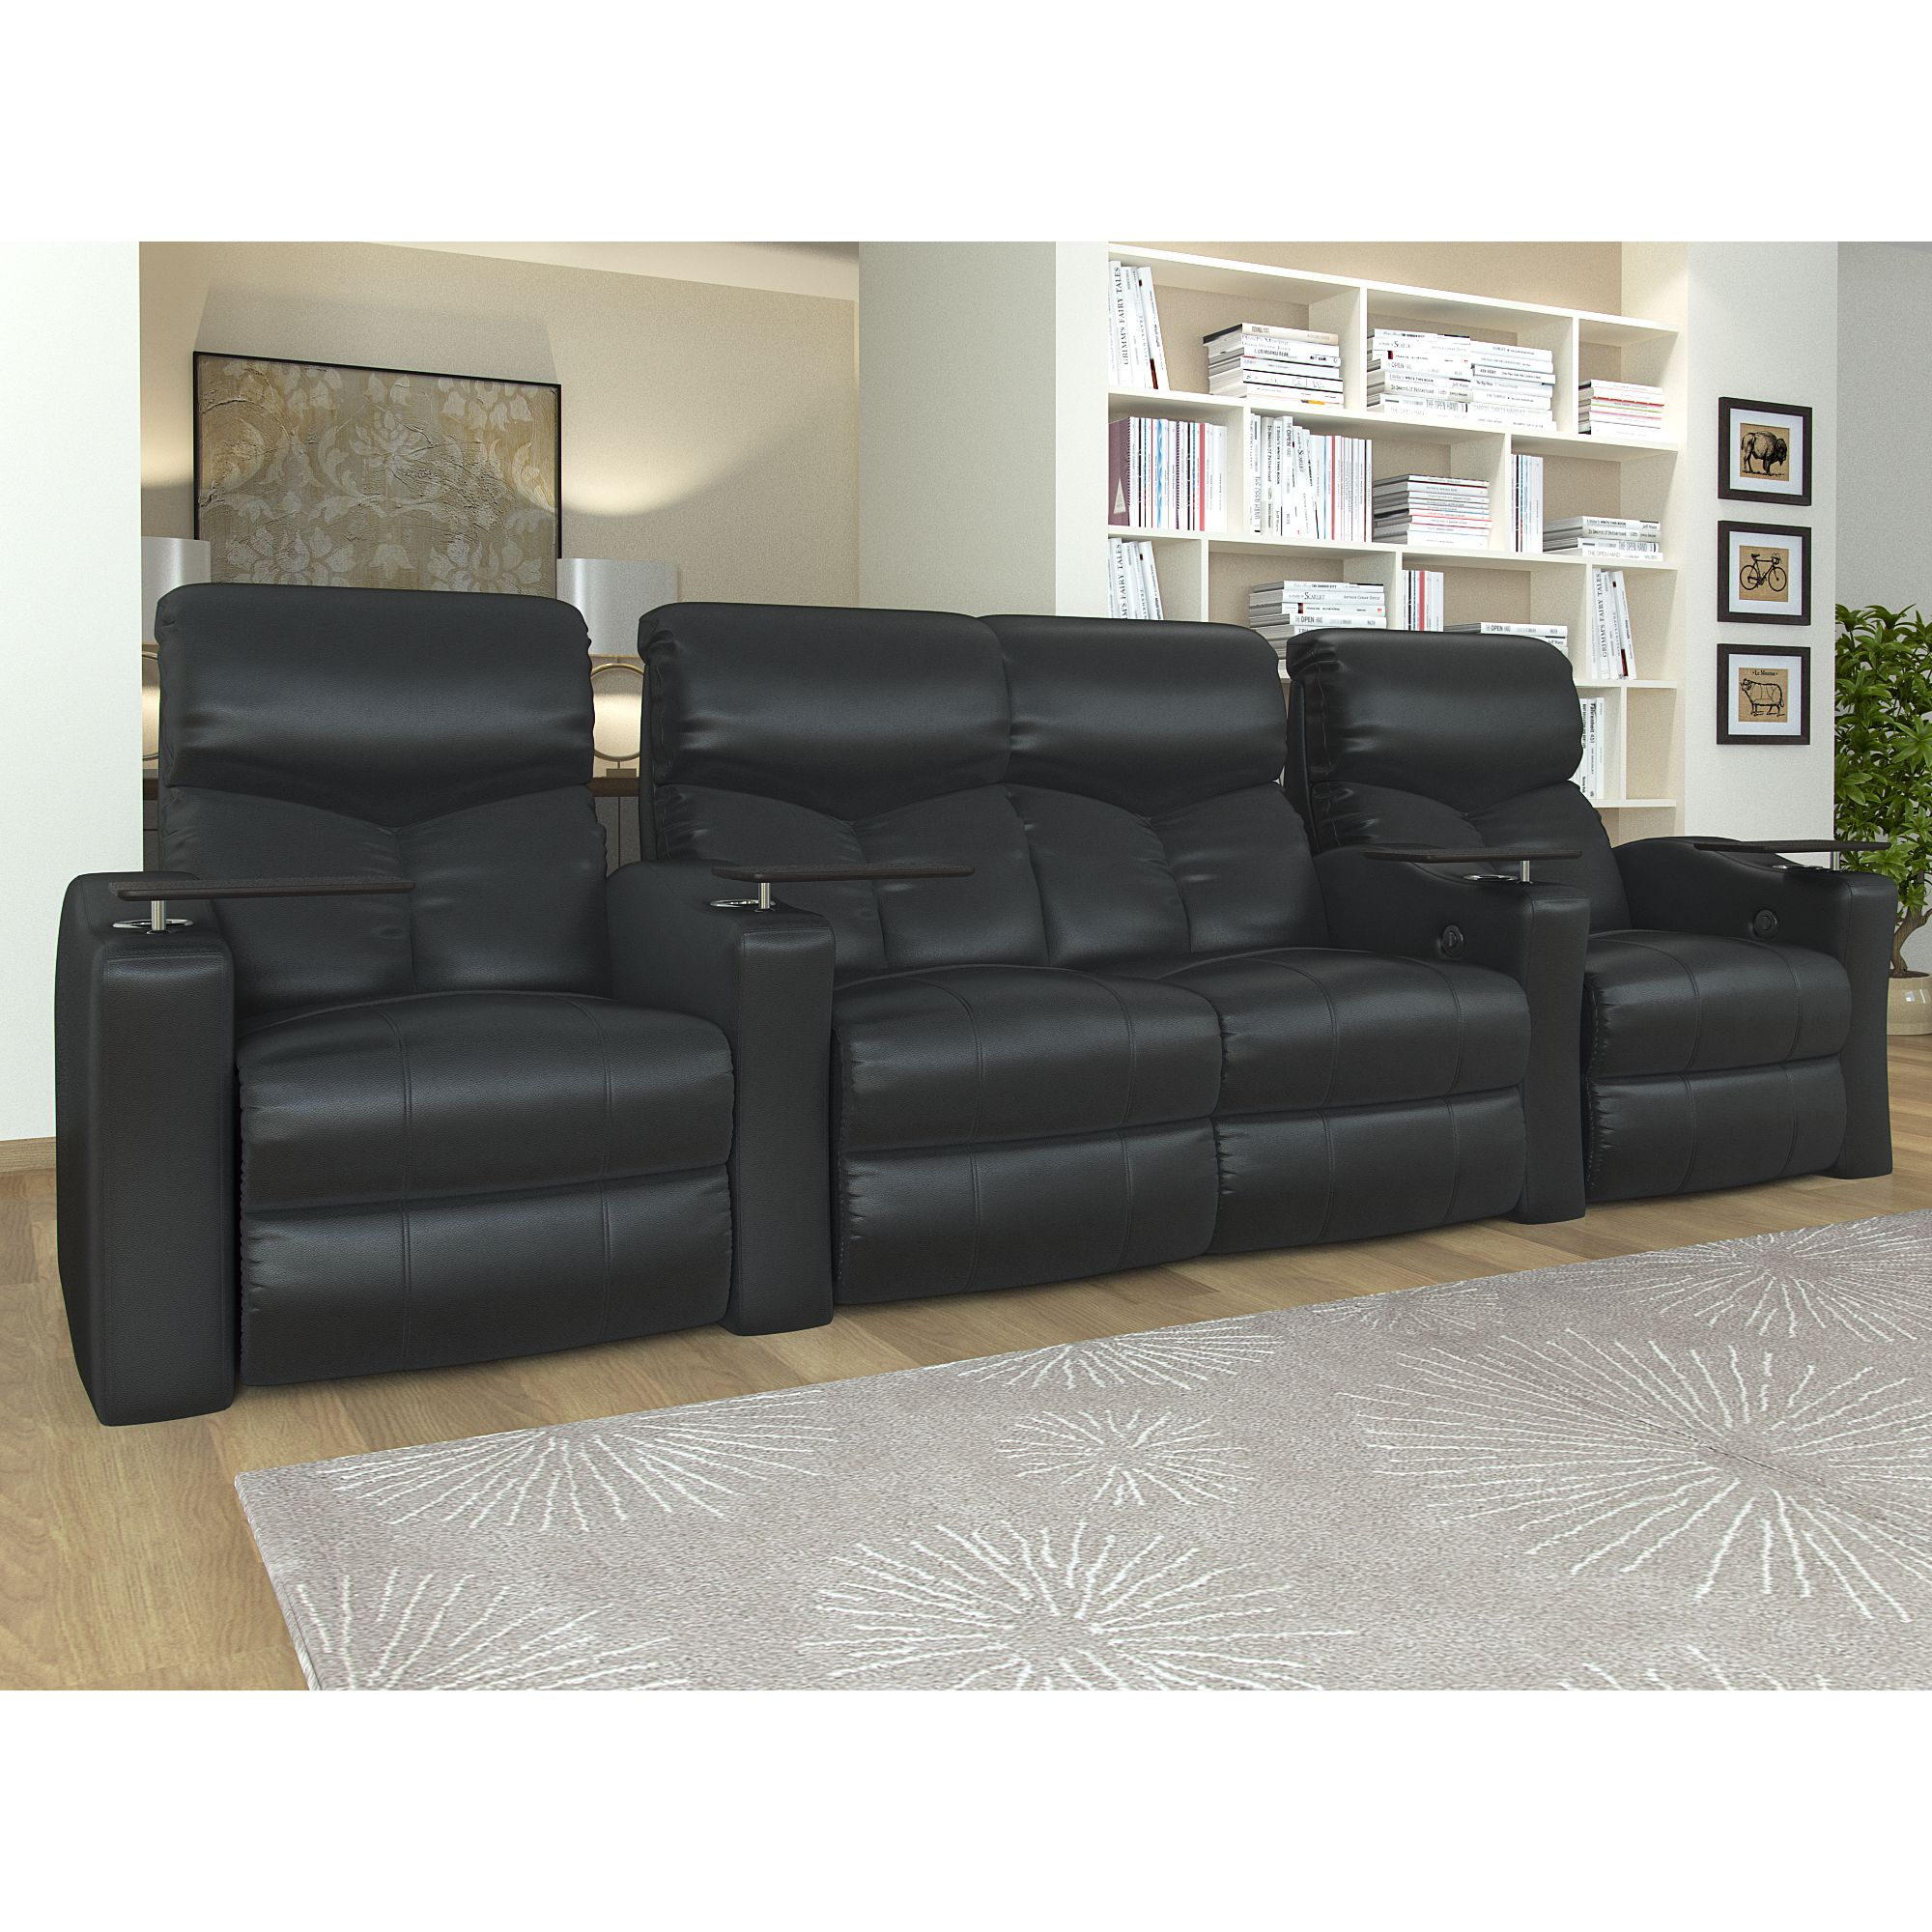 s creations loveseat sectional seats black chairs leather power theater motion pulaski home seating design american recliner seat theatre ideas sofa reclining couch striking